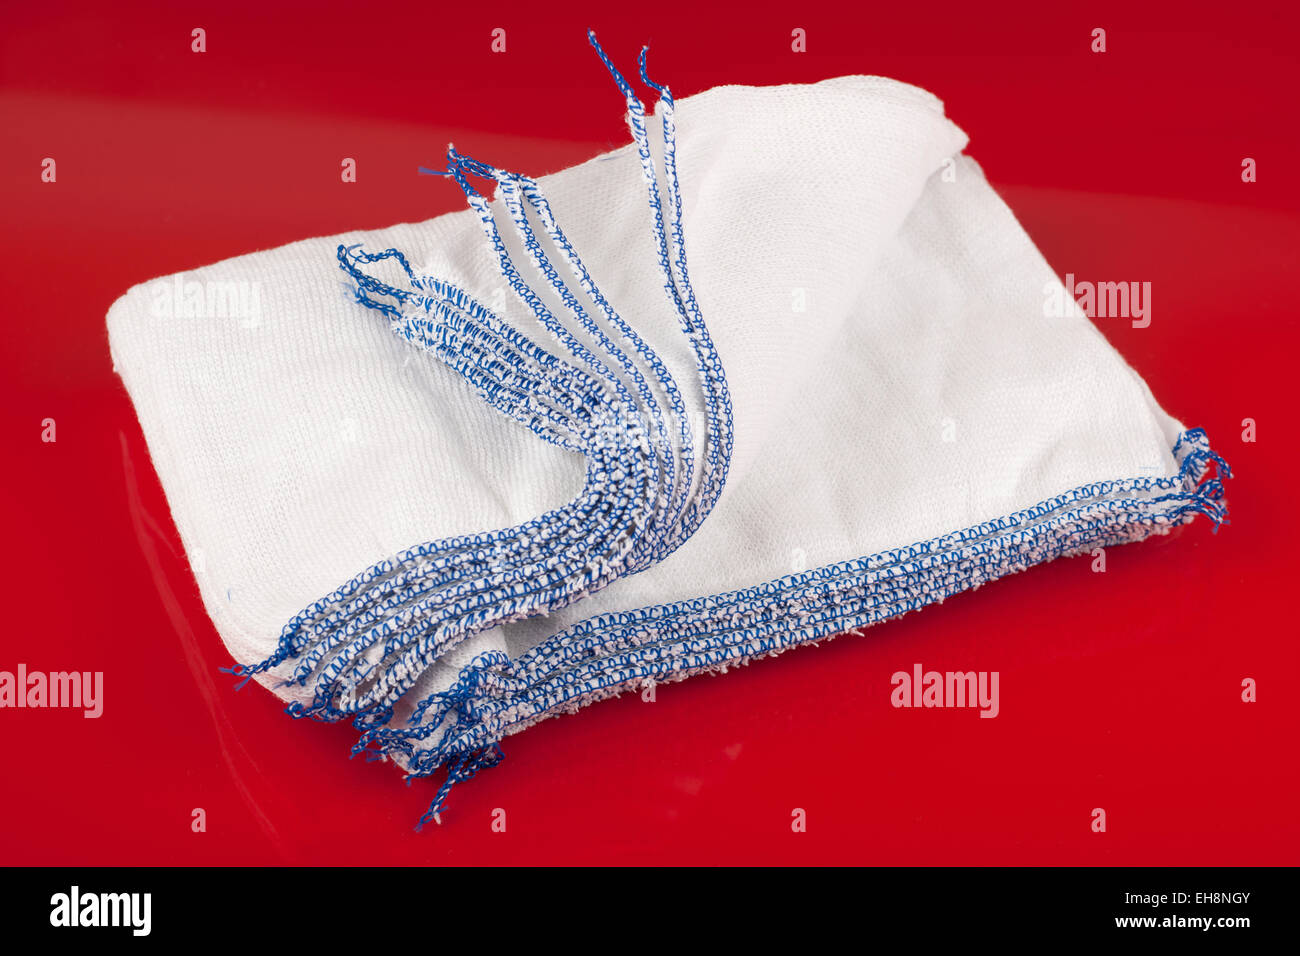 Pile of blue edged white dish cloths - Stock Image